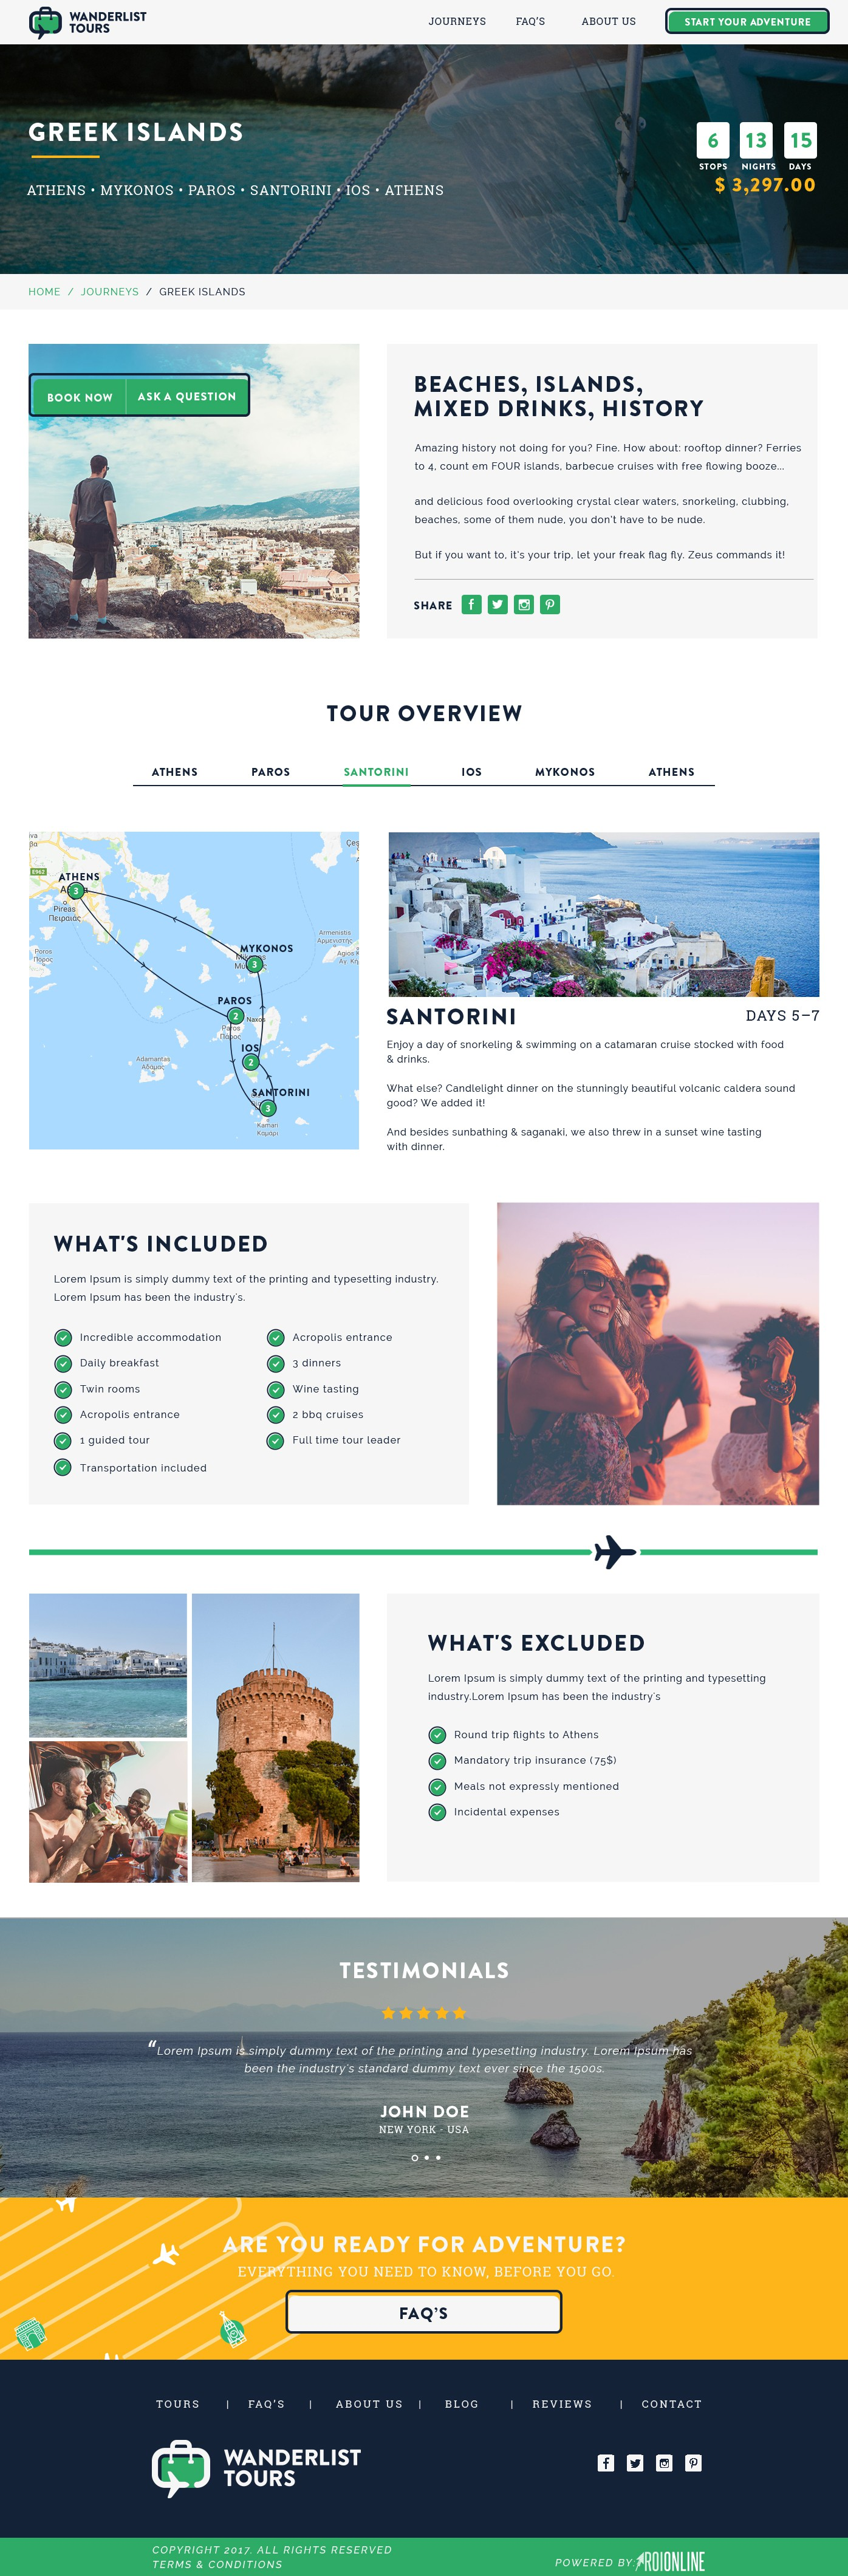 Complete Webdesign Project - WanderList Tours